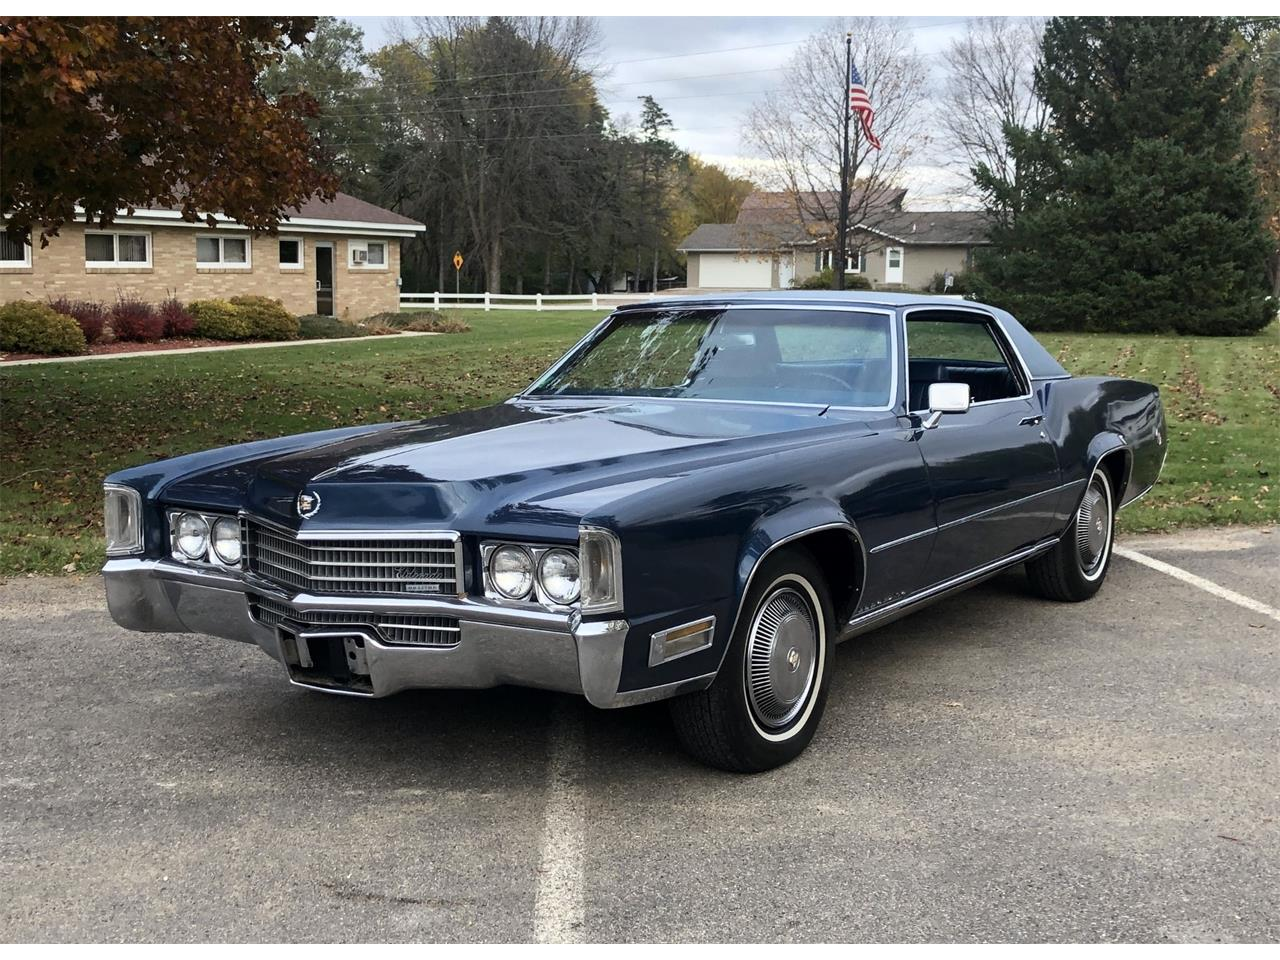 1970 Cadillac Eldorado (CC-1276546) for sale in Maple Lake, Minnesota